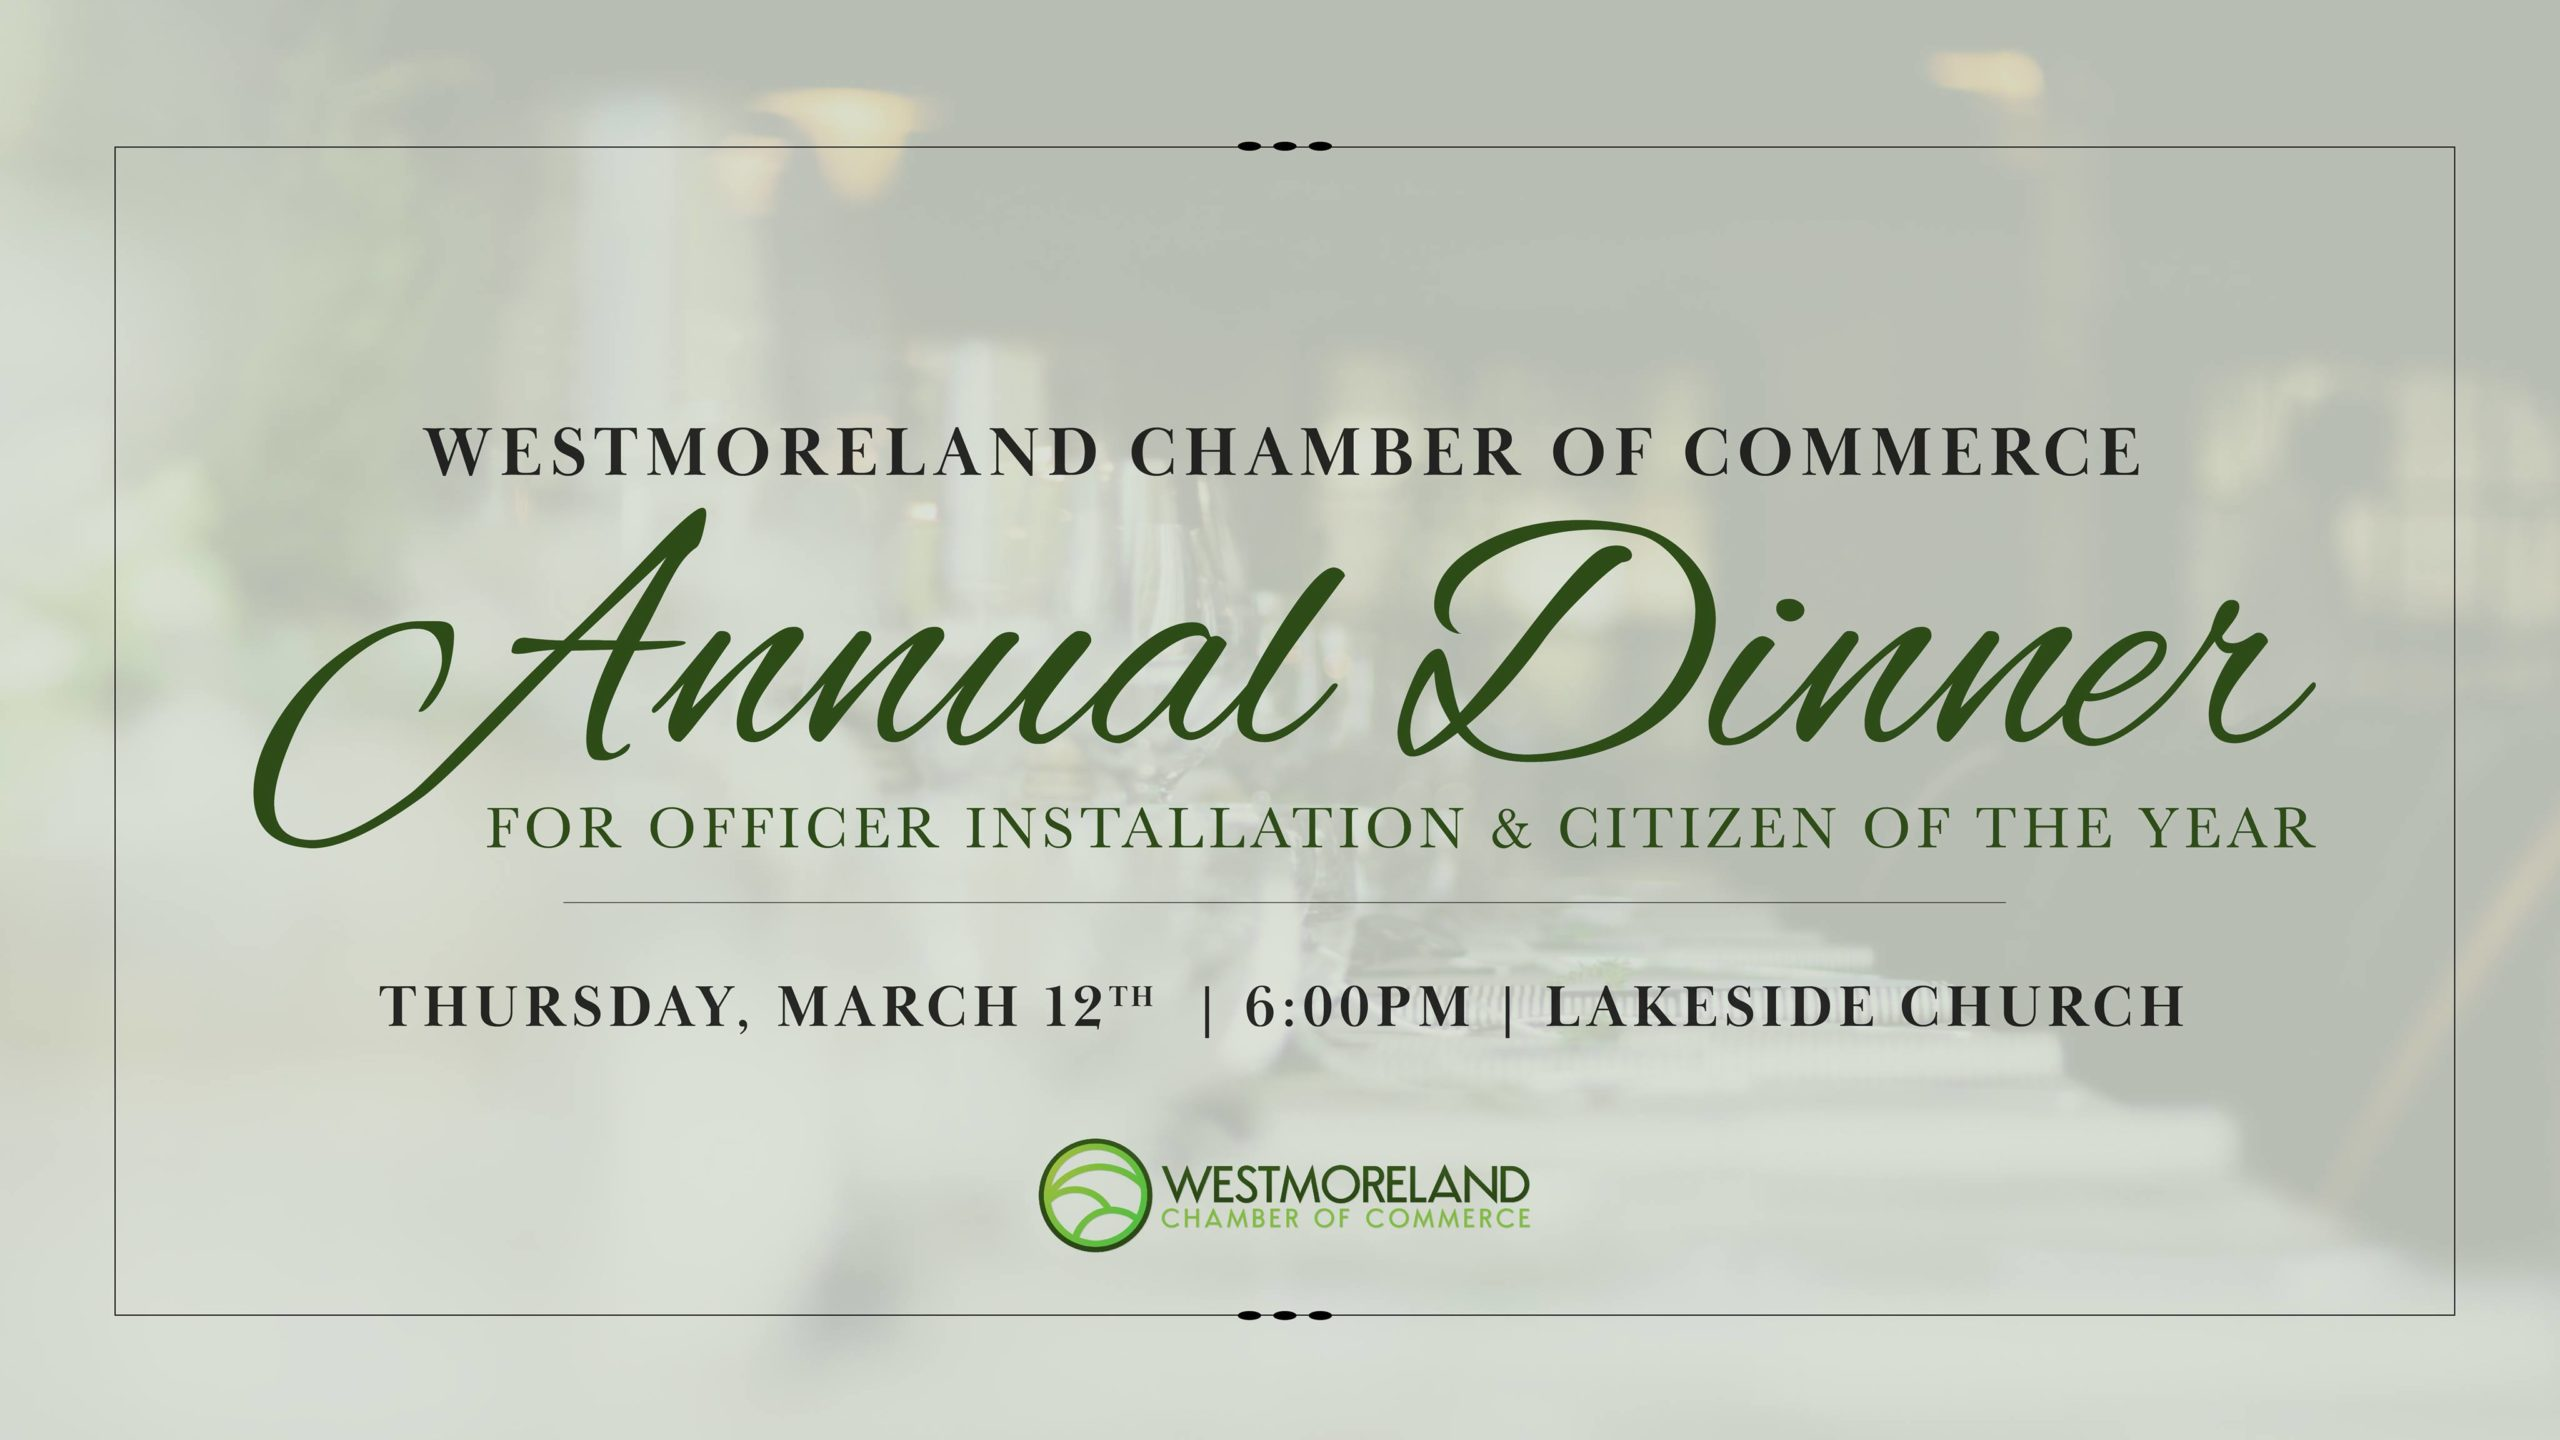 Westmoreland TN Chamber of Commerce Annual Banquet Event Flyer